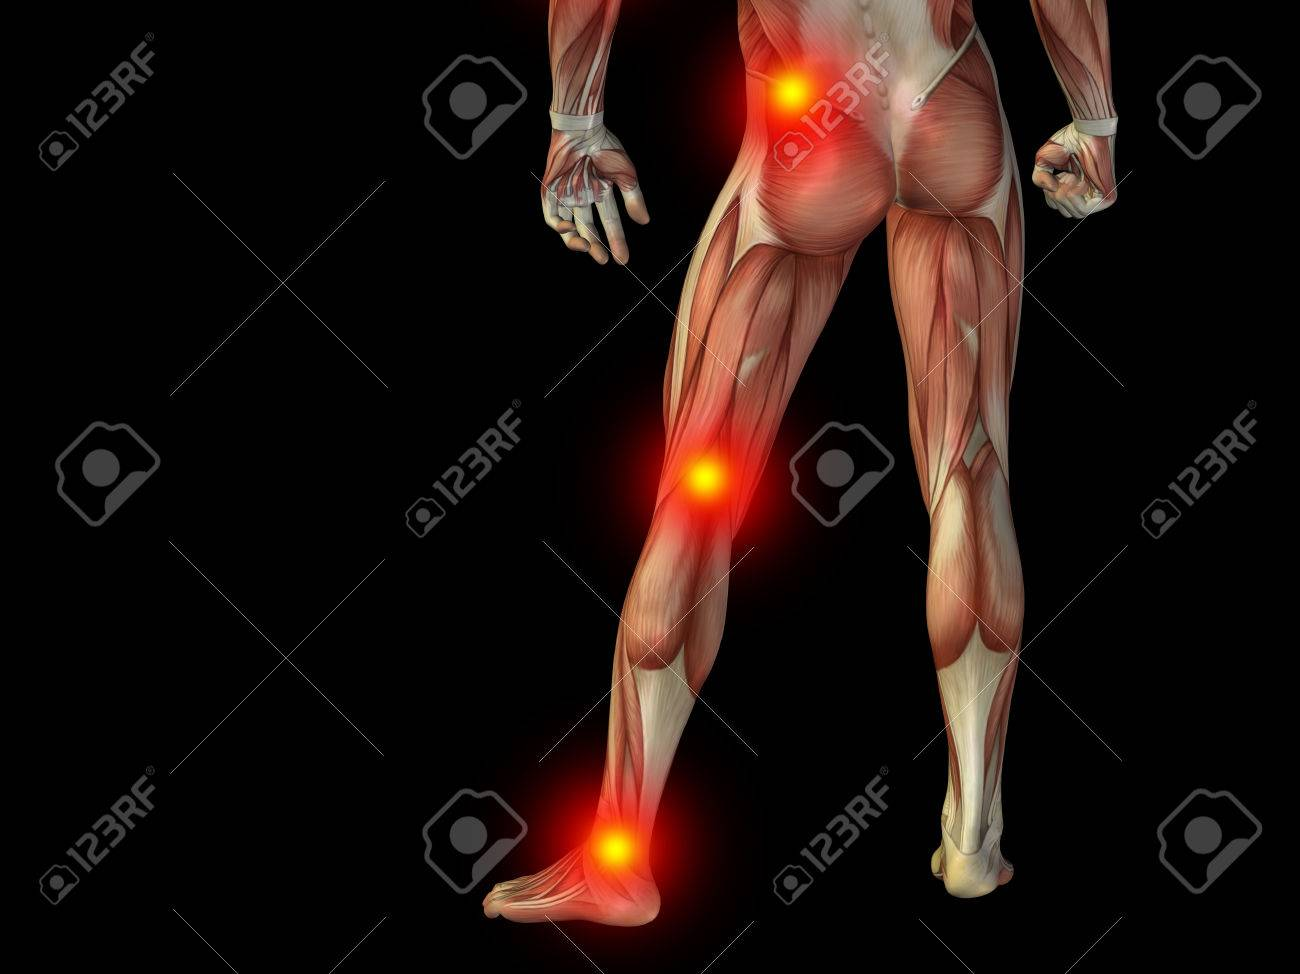 Conceptual human body anatomy articular pain on isolated on black background - 37633370